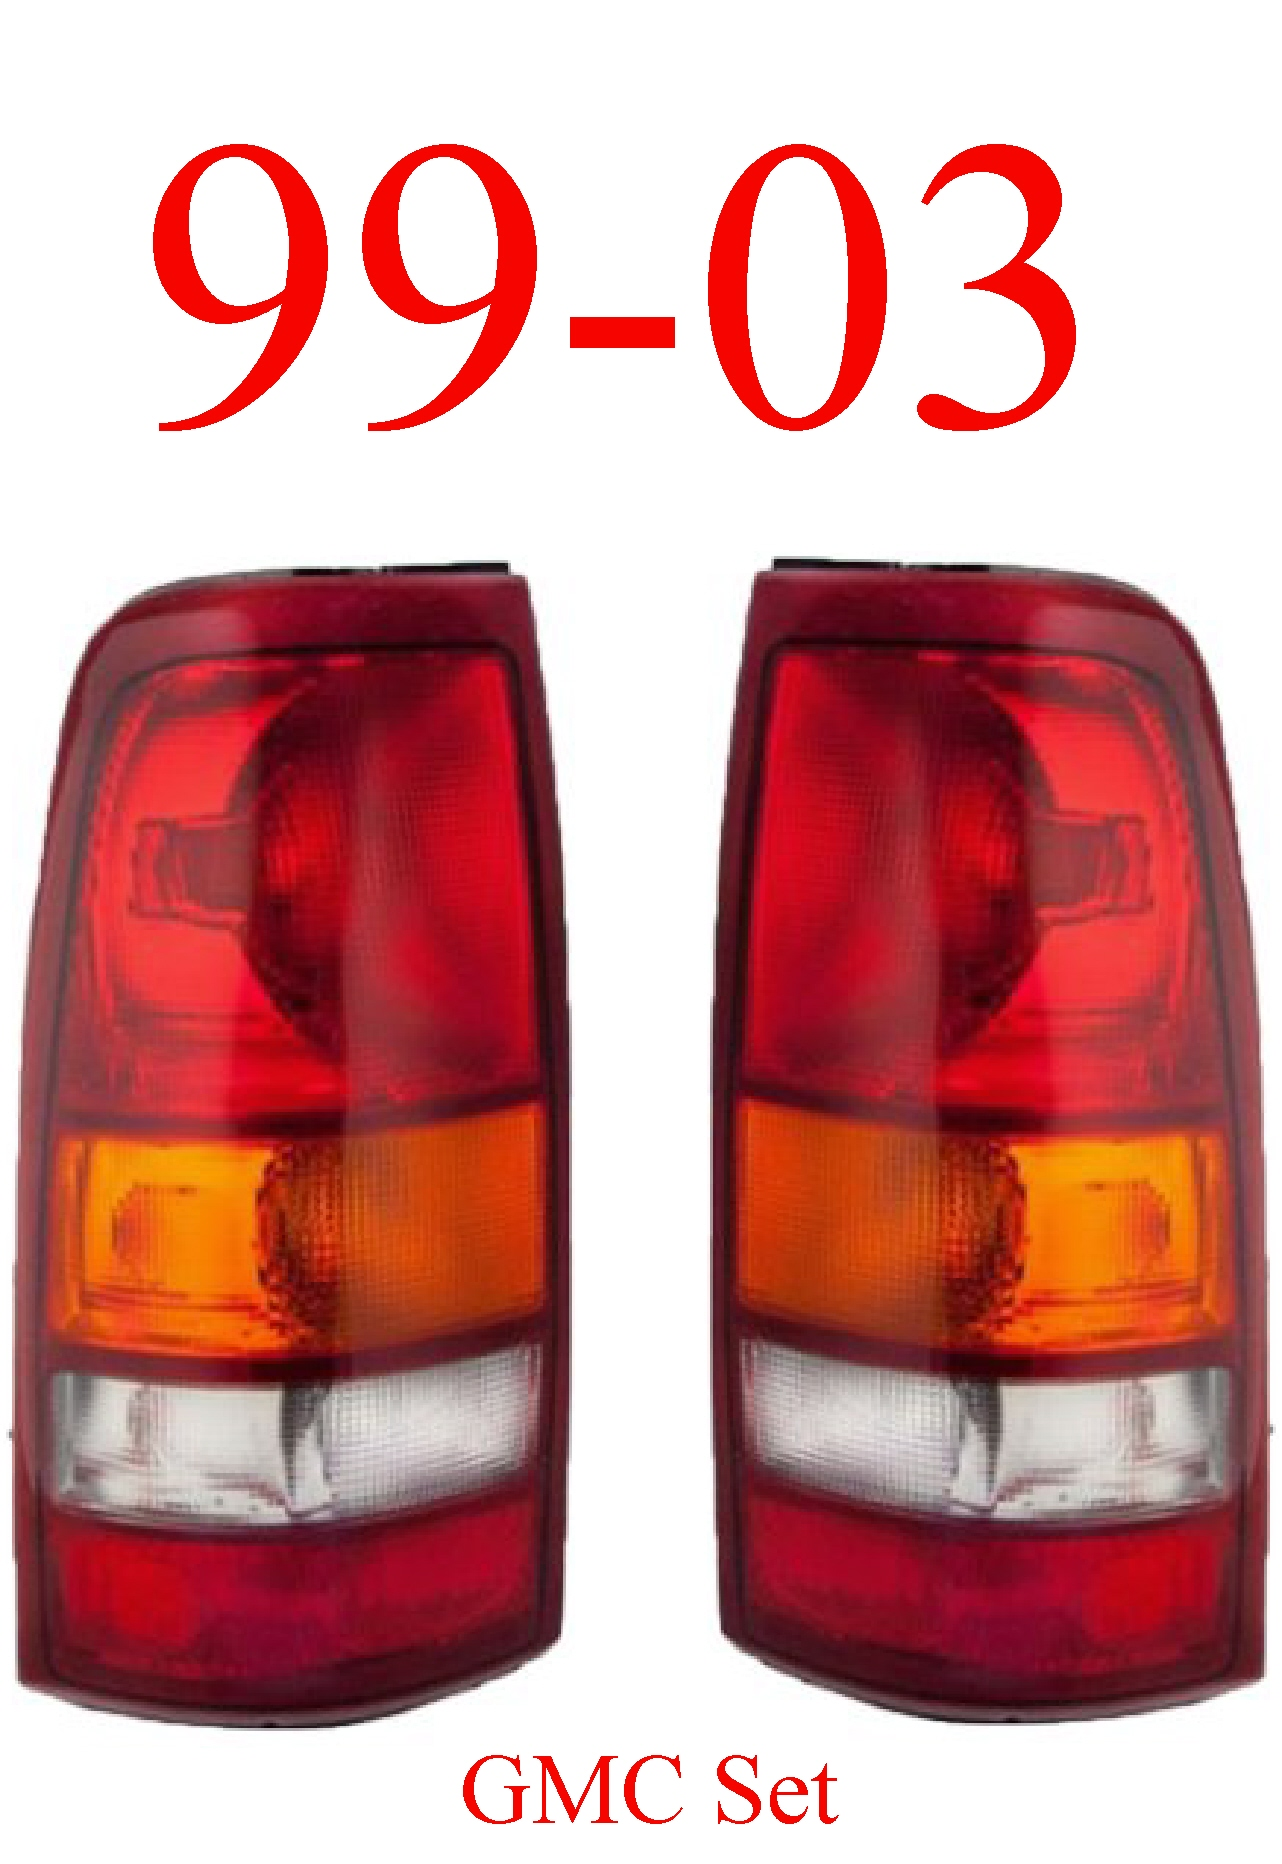 99-03 GMC Truck Tail Light Set